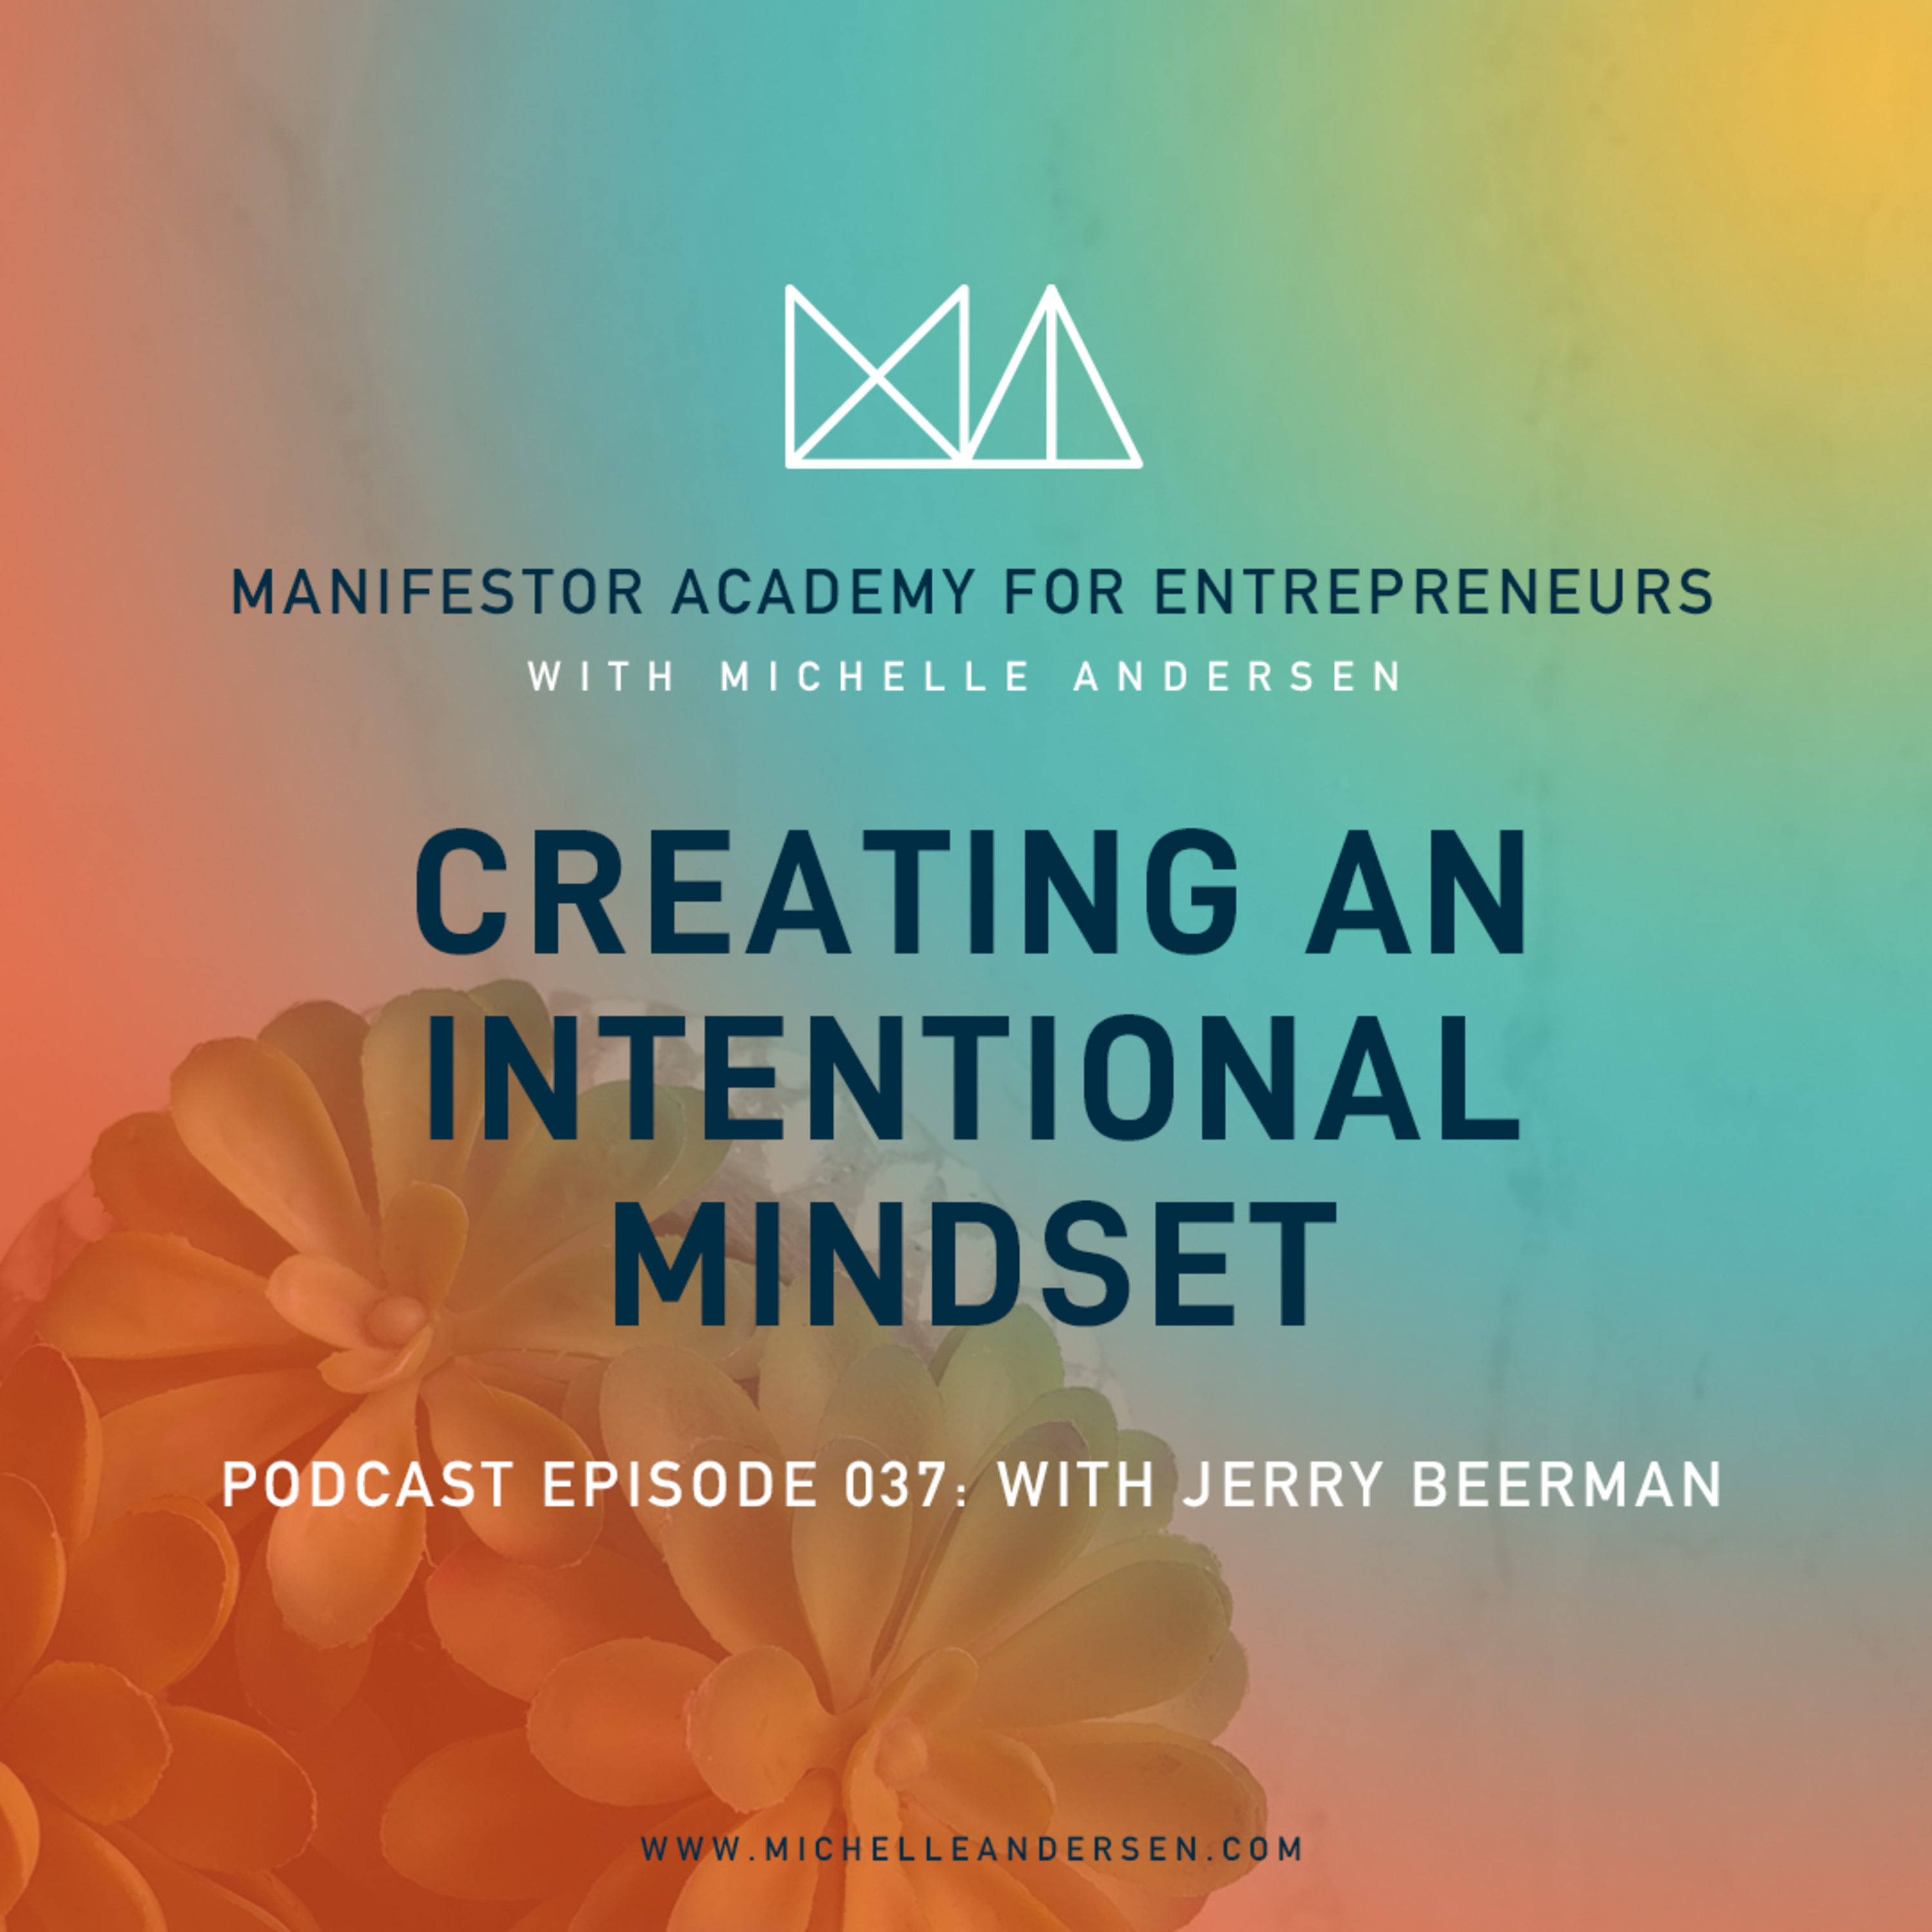 Jerry Beerman on Creating An Intentional Mindset